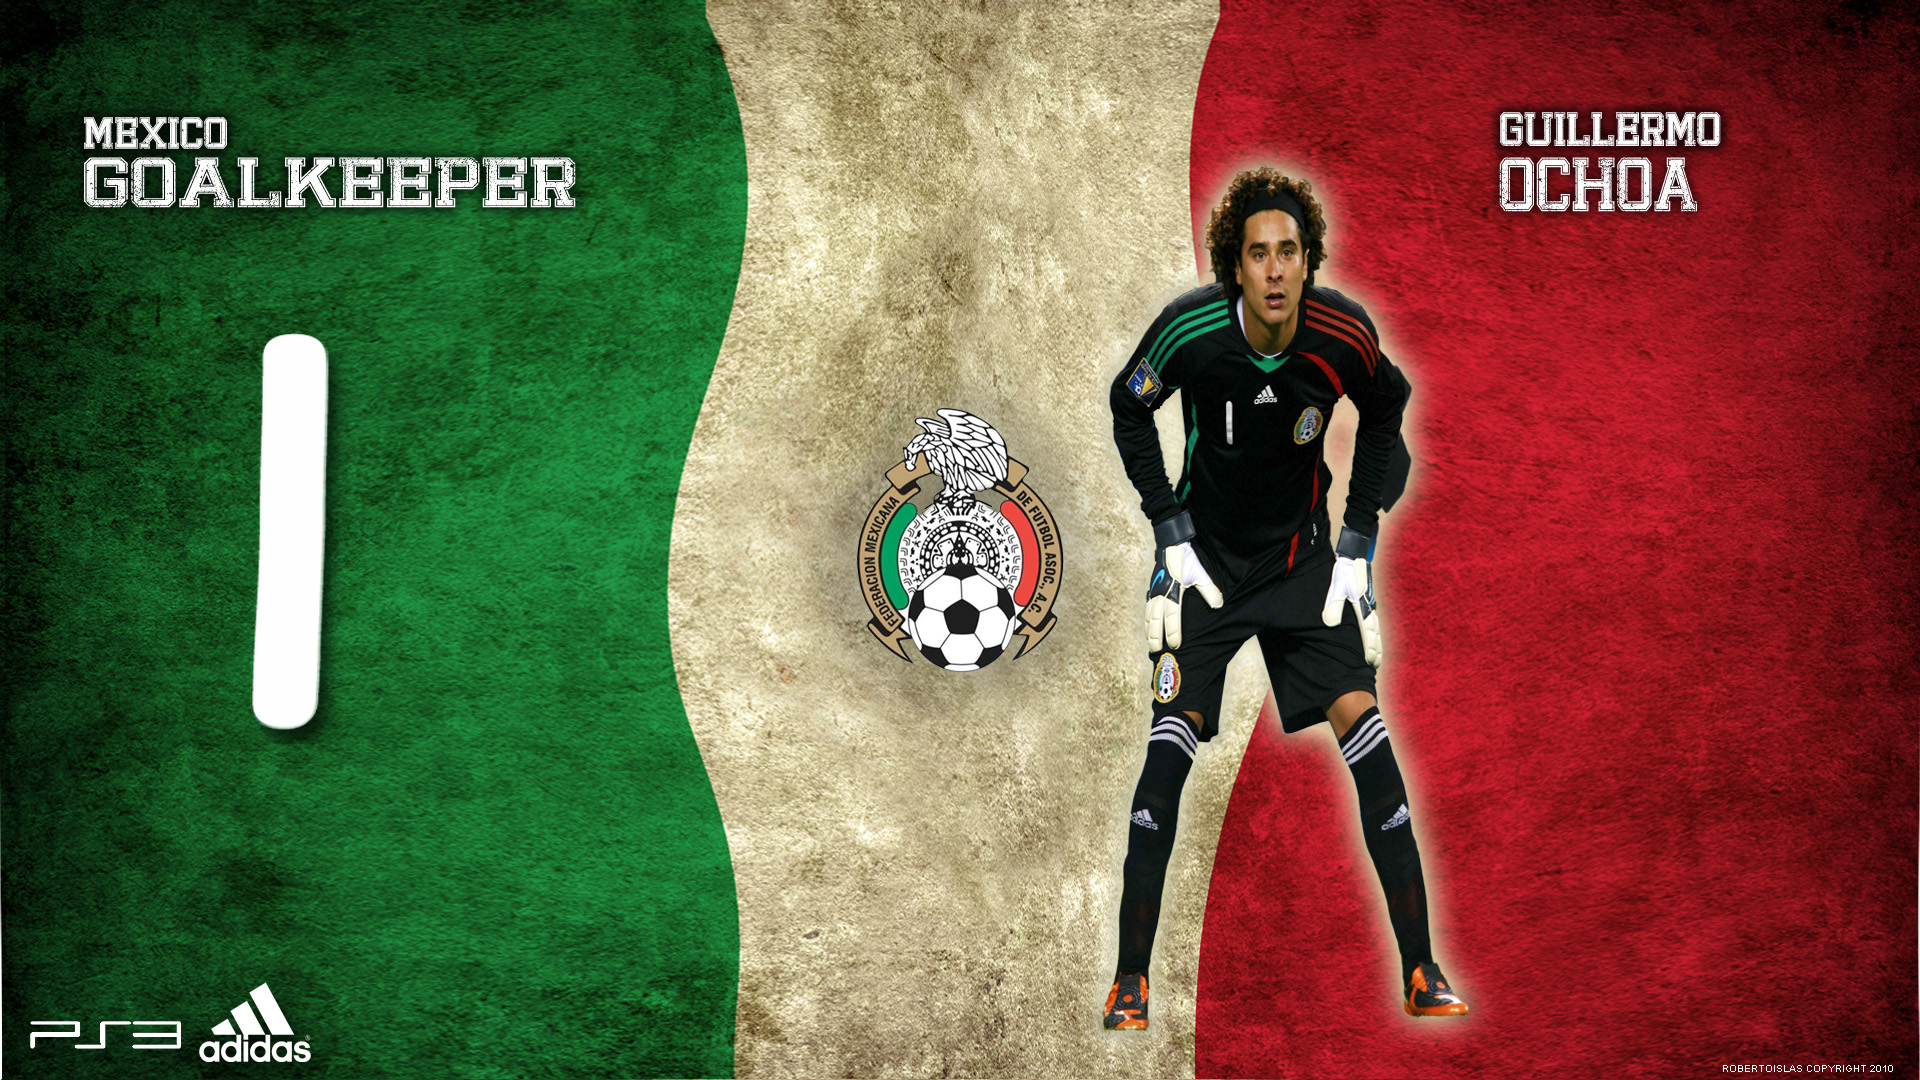 powerade wallpaper guillermo ochoa - photo #7